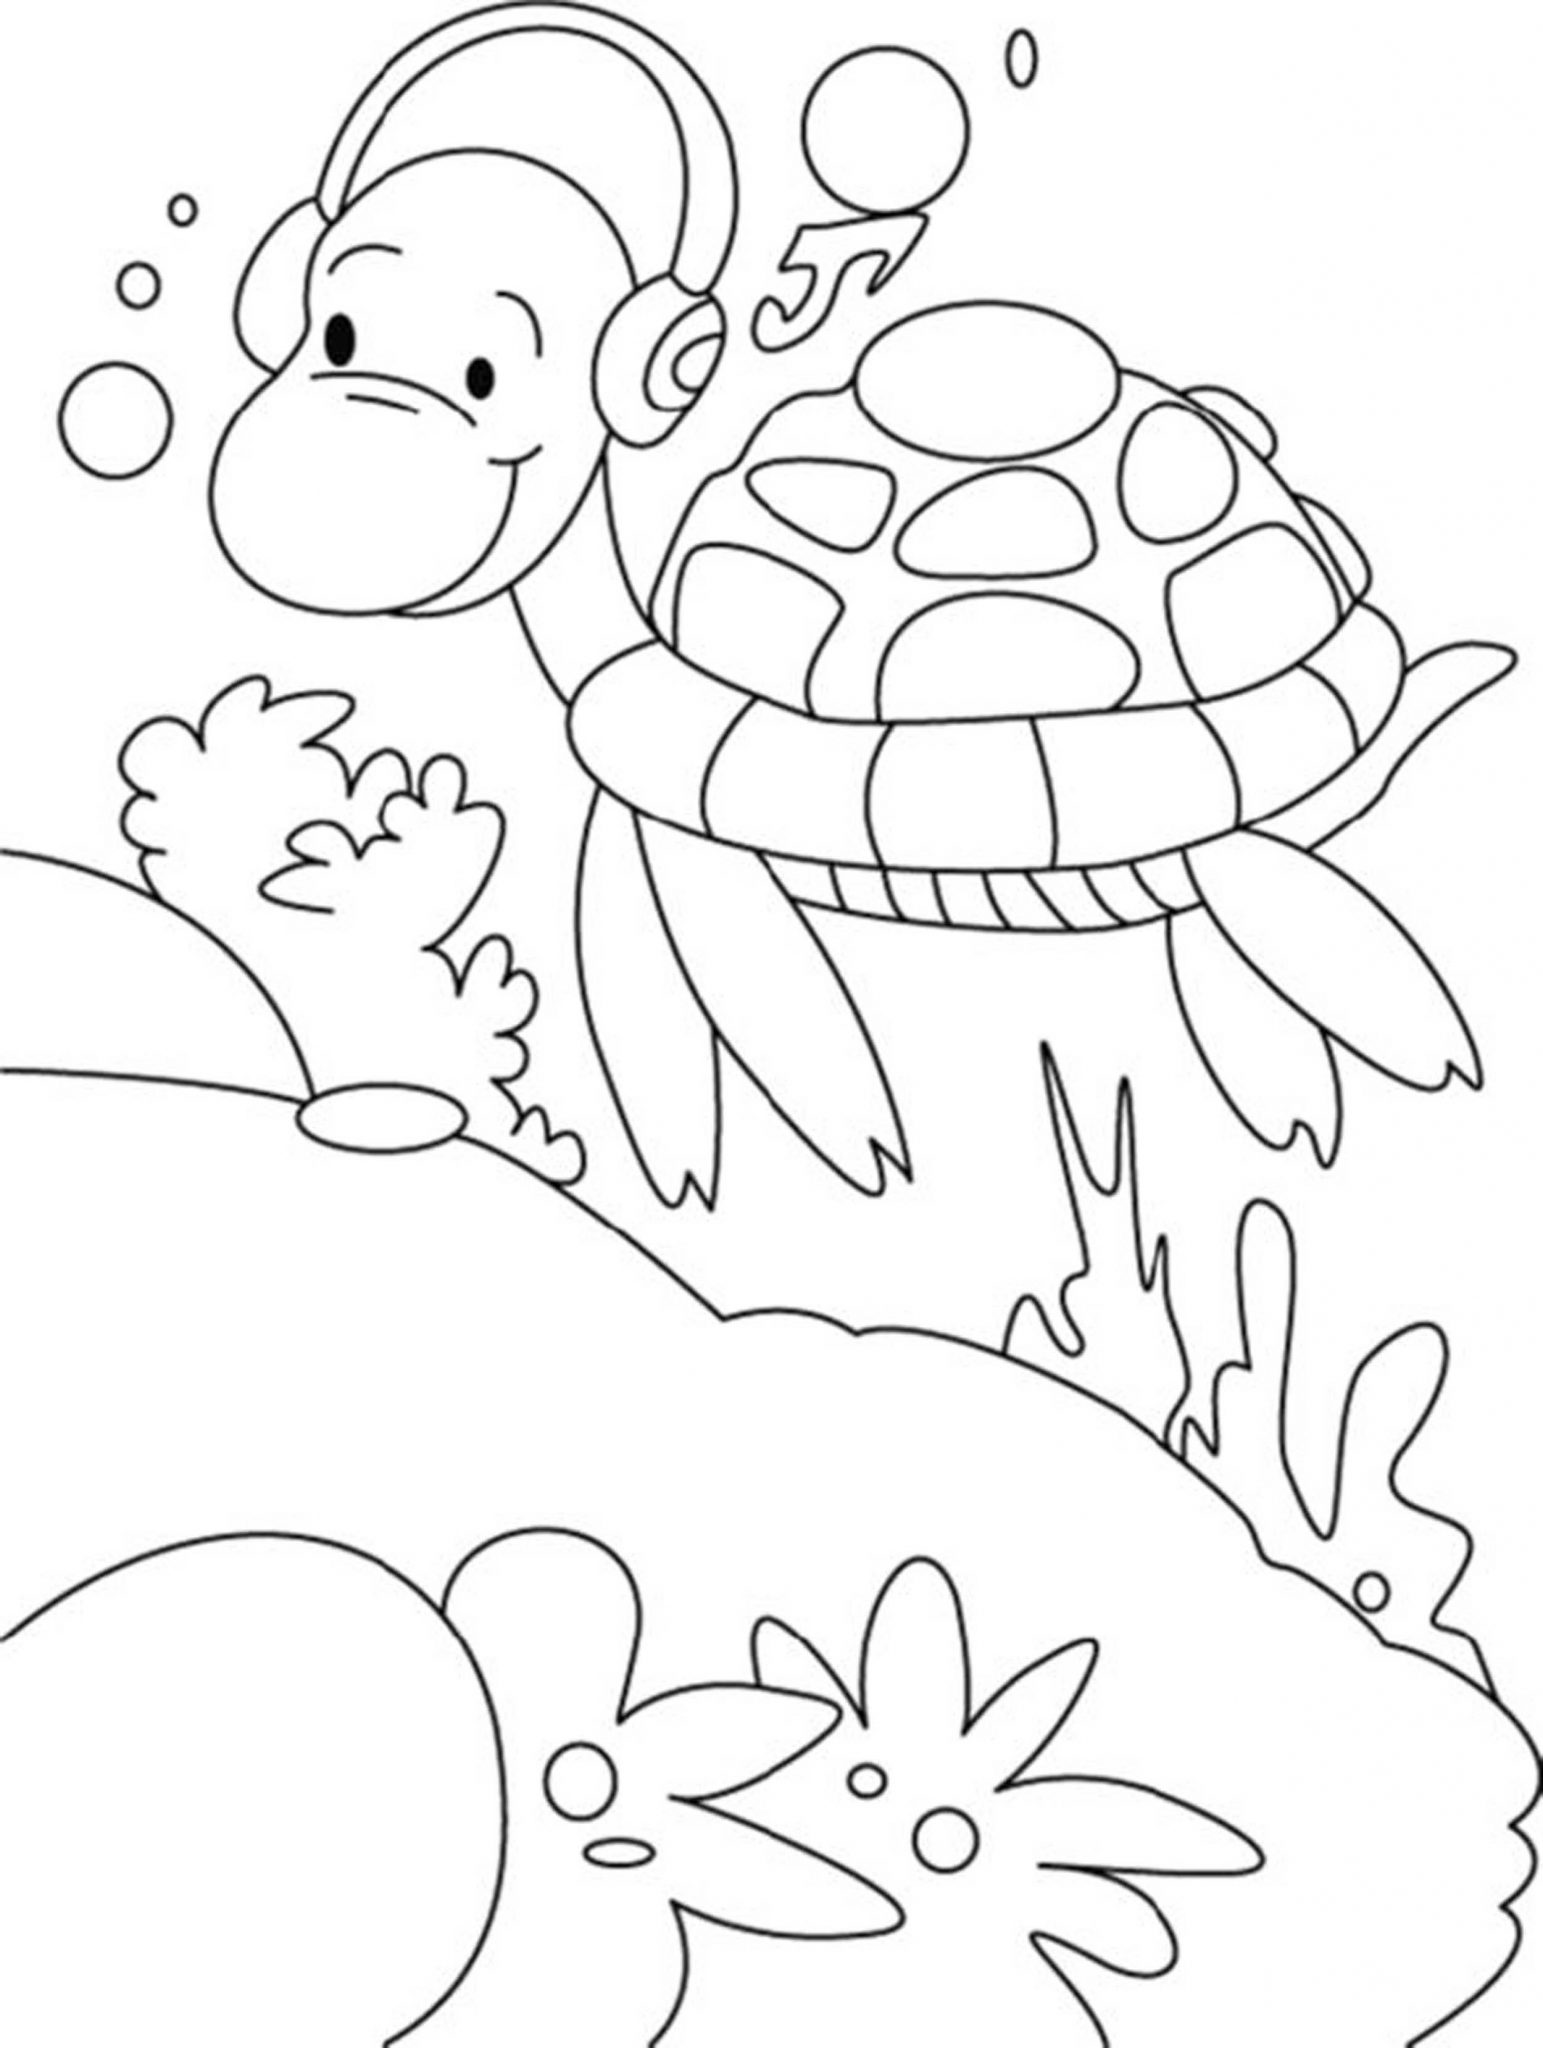 turtle coloring pictures to print turtles free to color for kids turtles kids coloring pages turtle pictures to print coloring